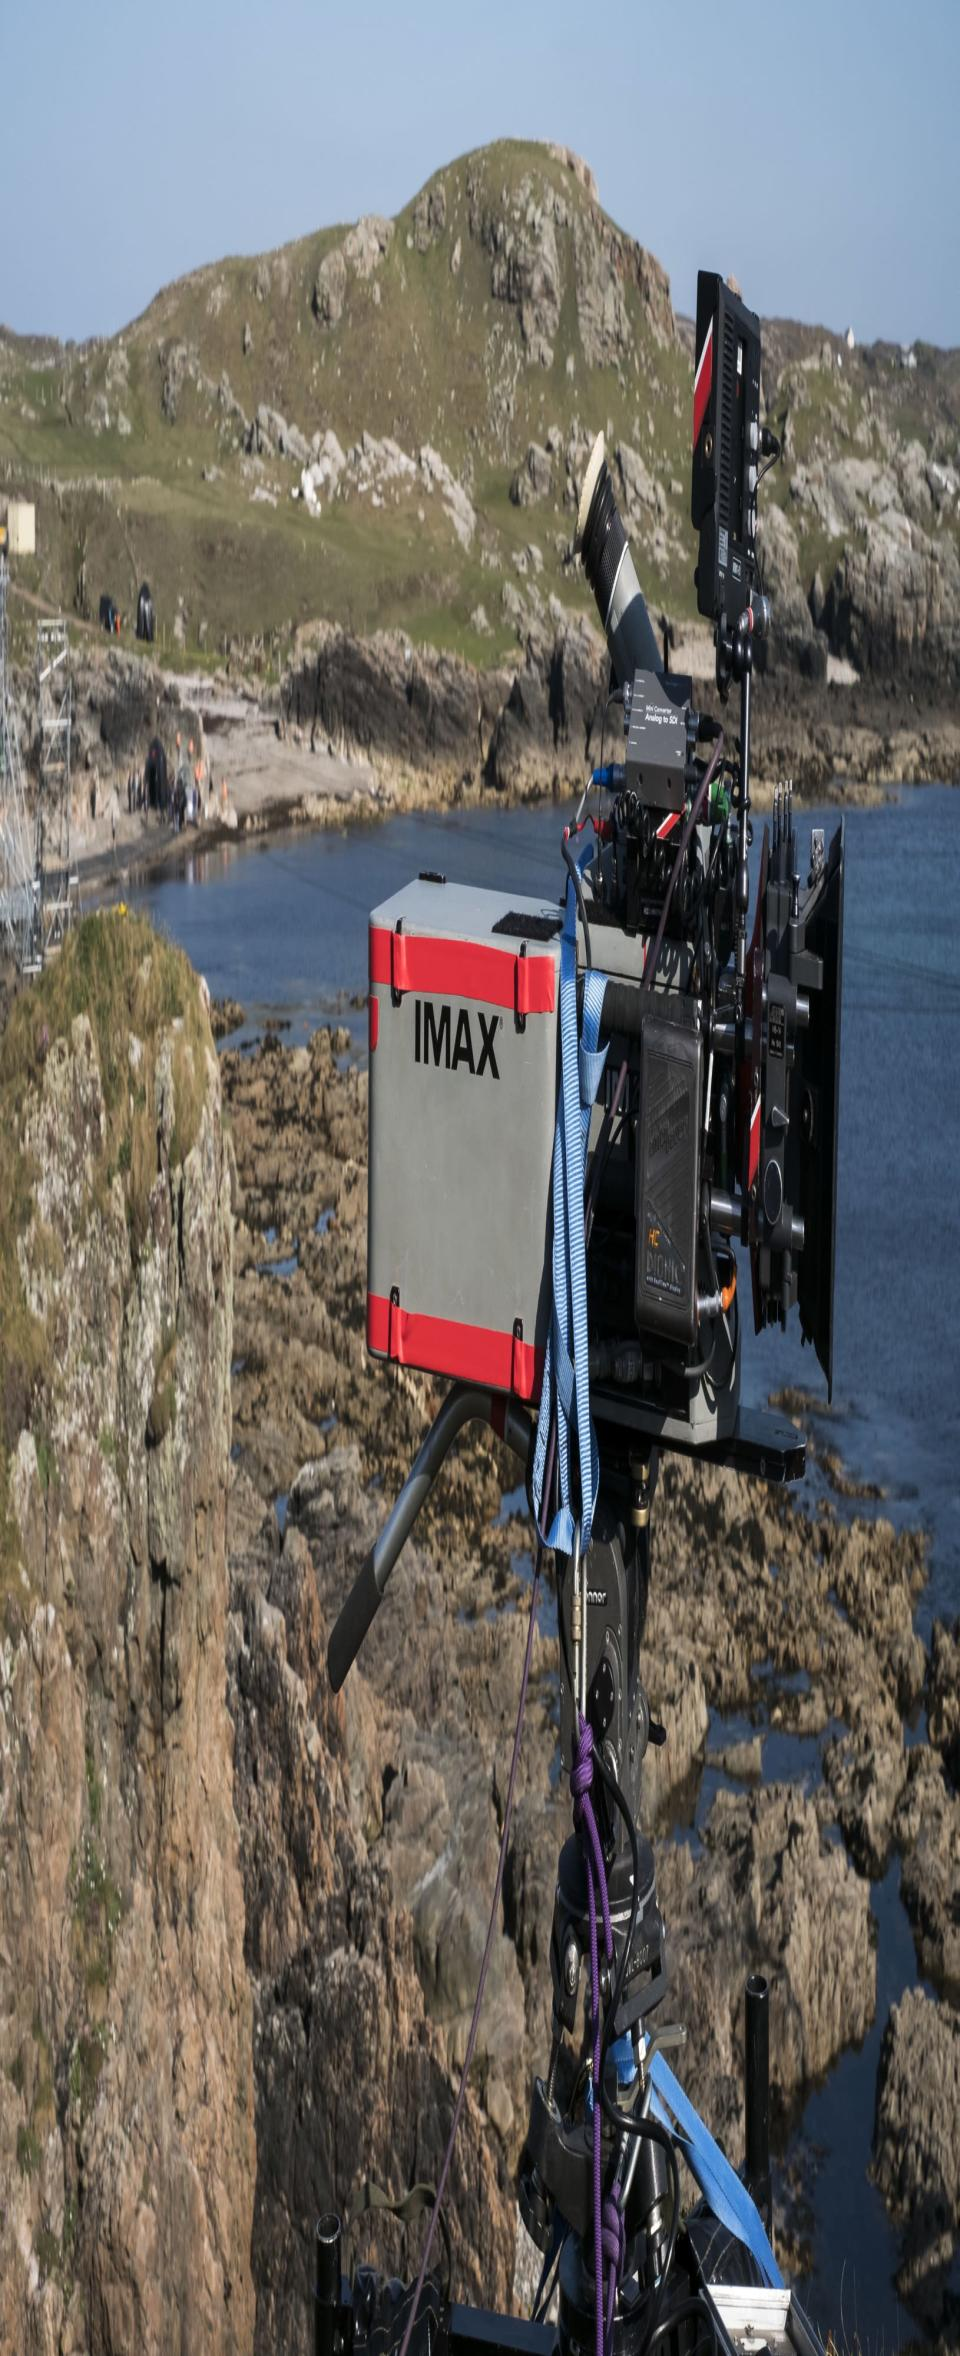 Imax camera on Skellig Michael during filming of <i>The Last Jedi.</i> (Photo: Lucasfilm/Imax)